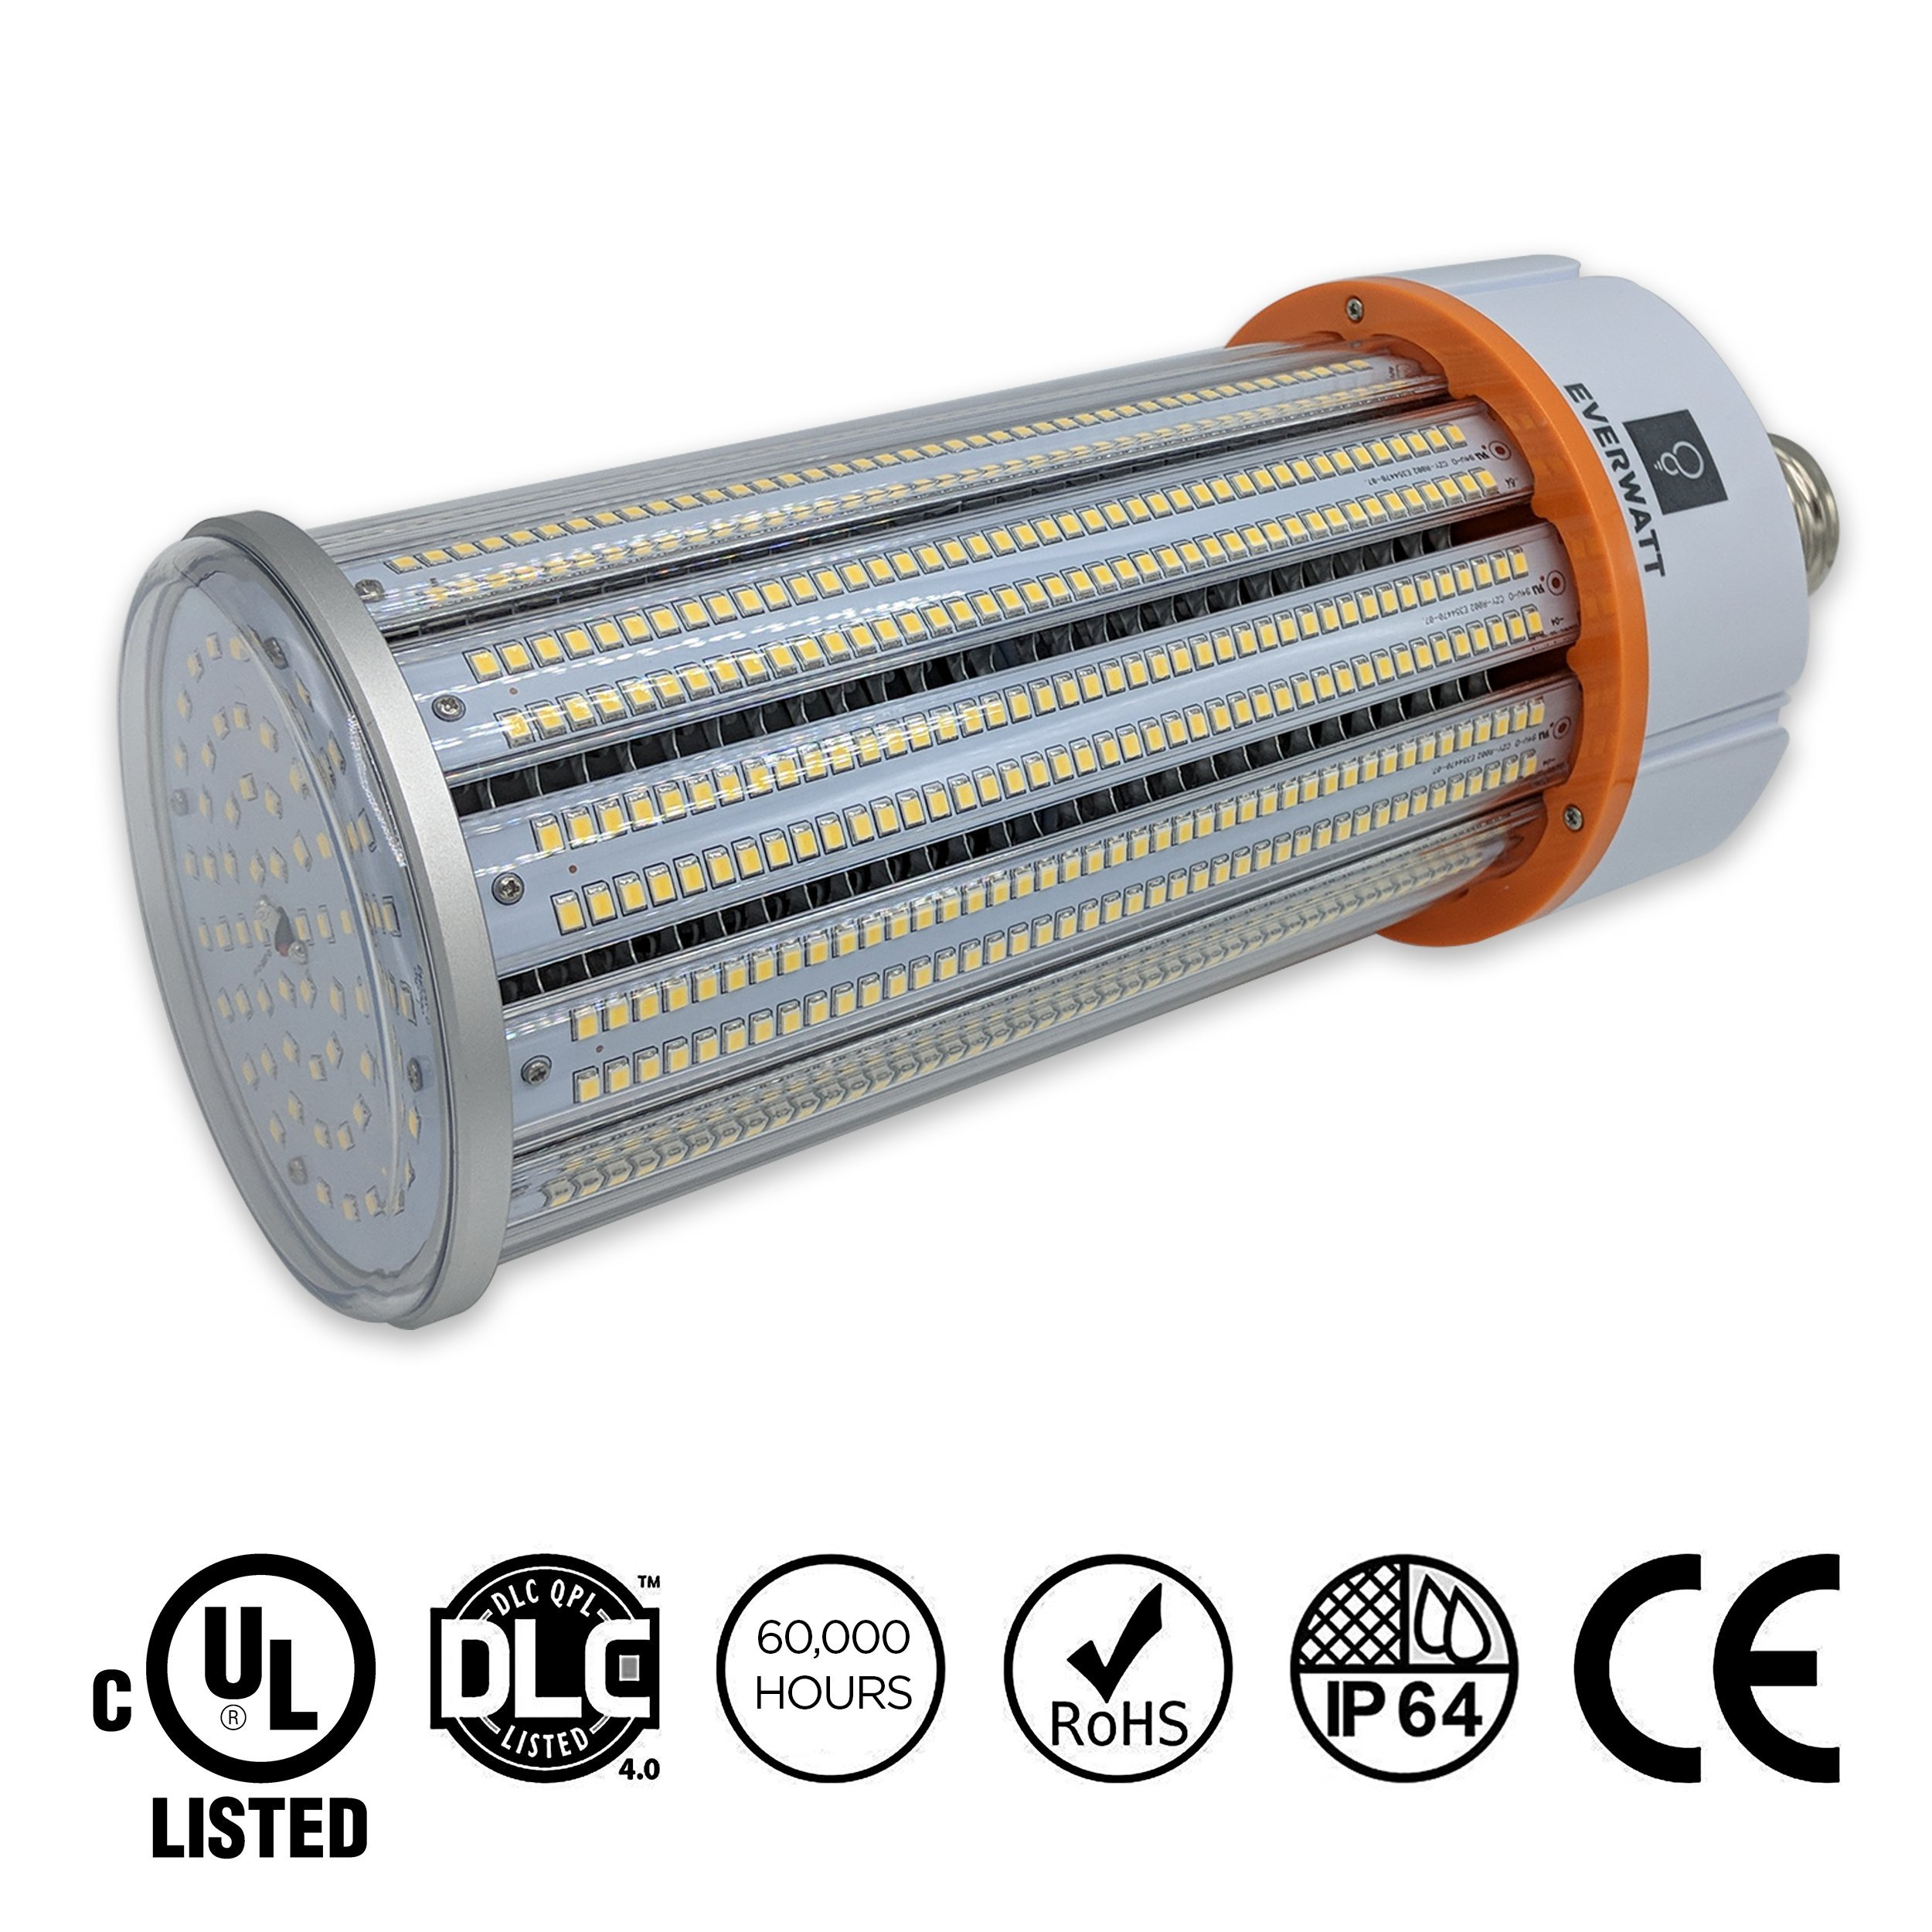 150W LED Corn Light Bulb, Large Mogul E39 Base, 21892 Lumens, 5000K, IP64 Waterproof Outdoor Indoor Area Lighting, Replacement for Metal Halide HID, CFL, HPS by EverWatt